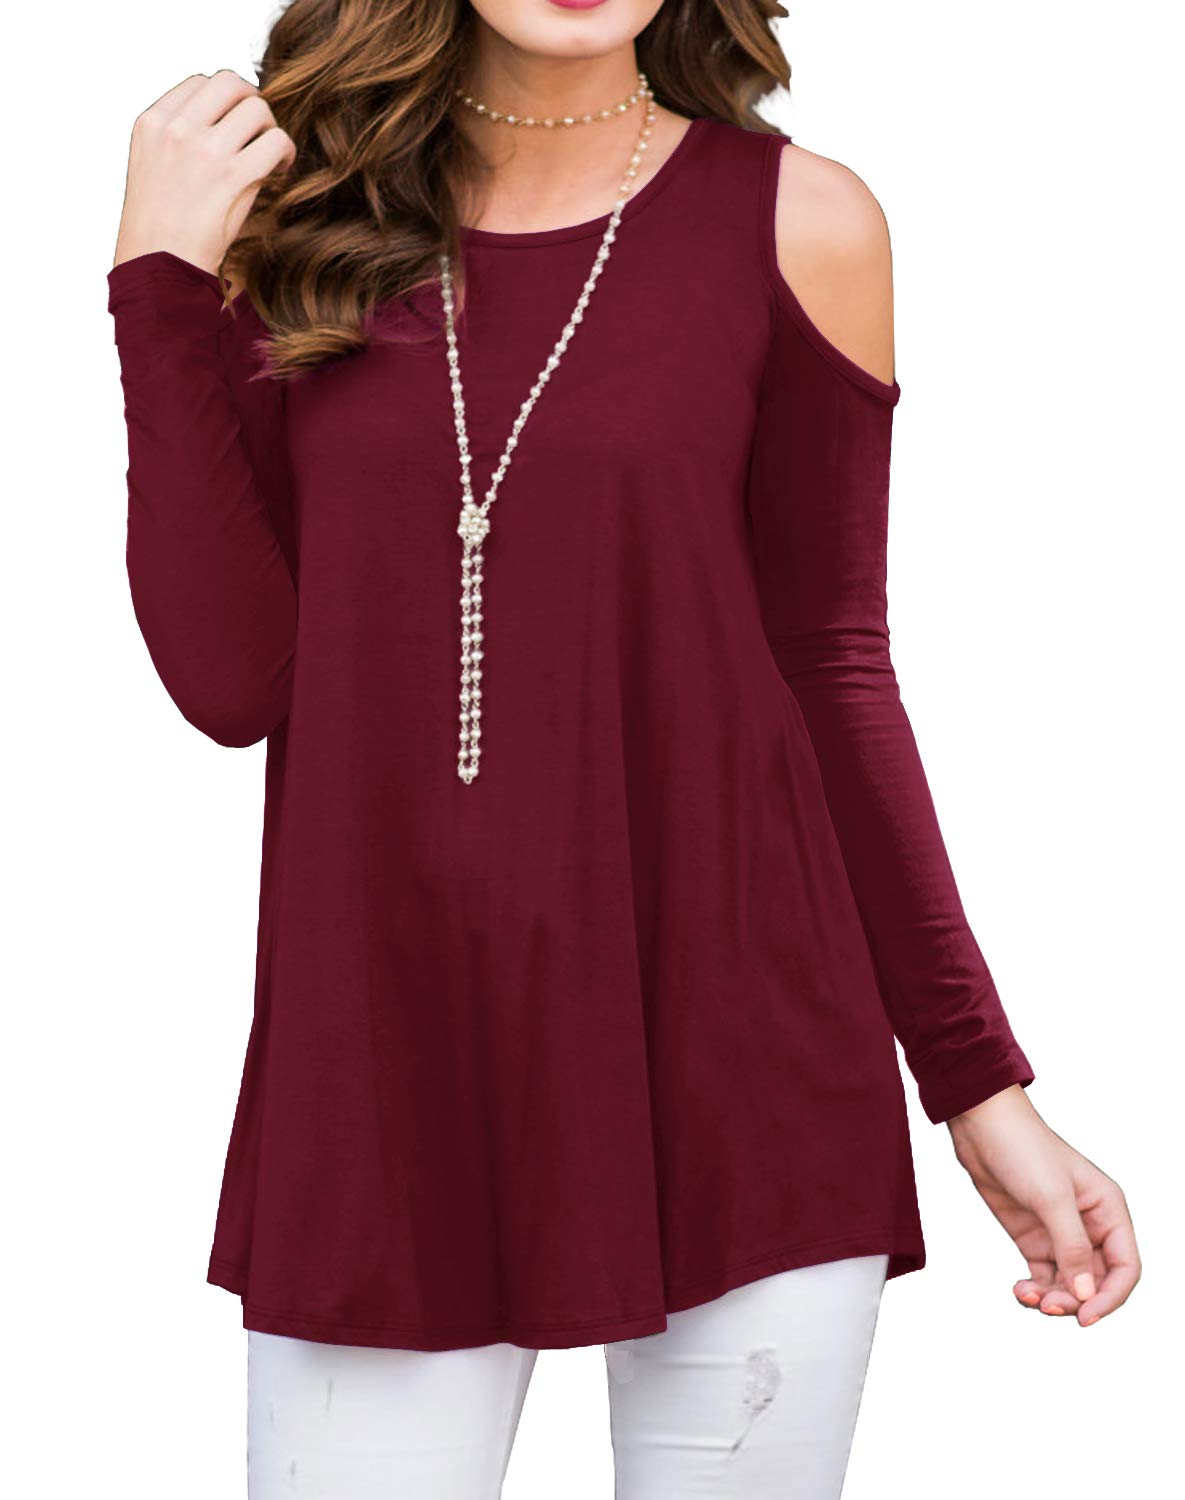 PrinStory Womens Long Sleeve Off Shoulder Round Neck Casual Loose Top Blouse T-Shirt Wine Red-S